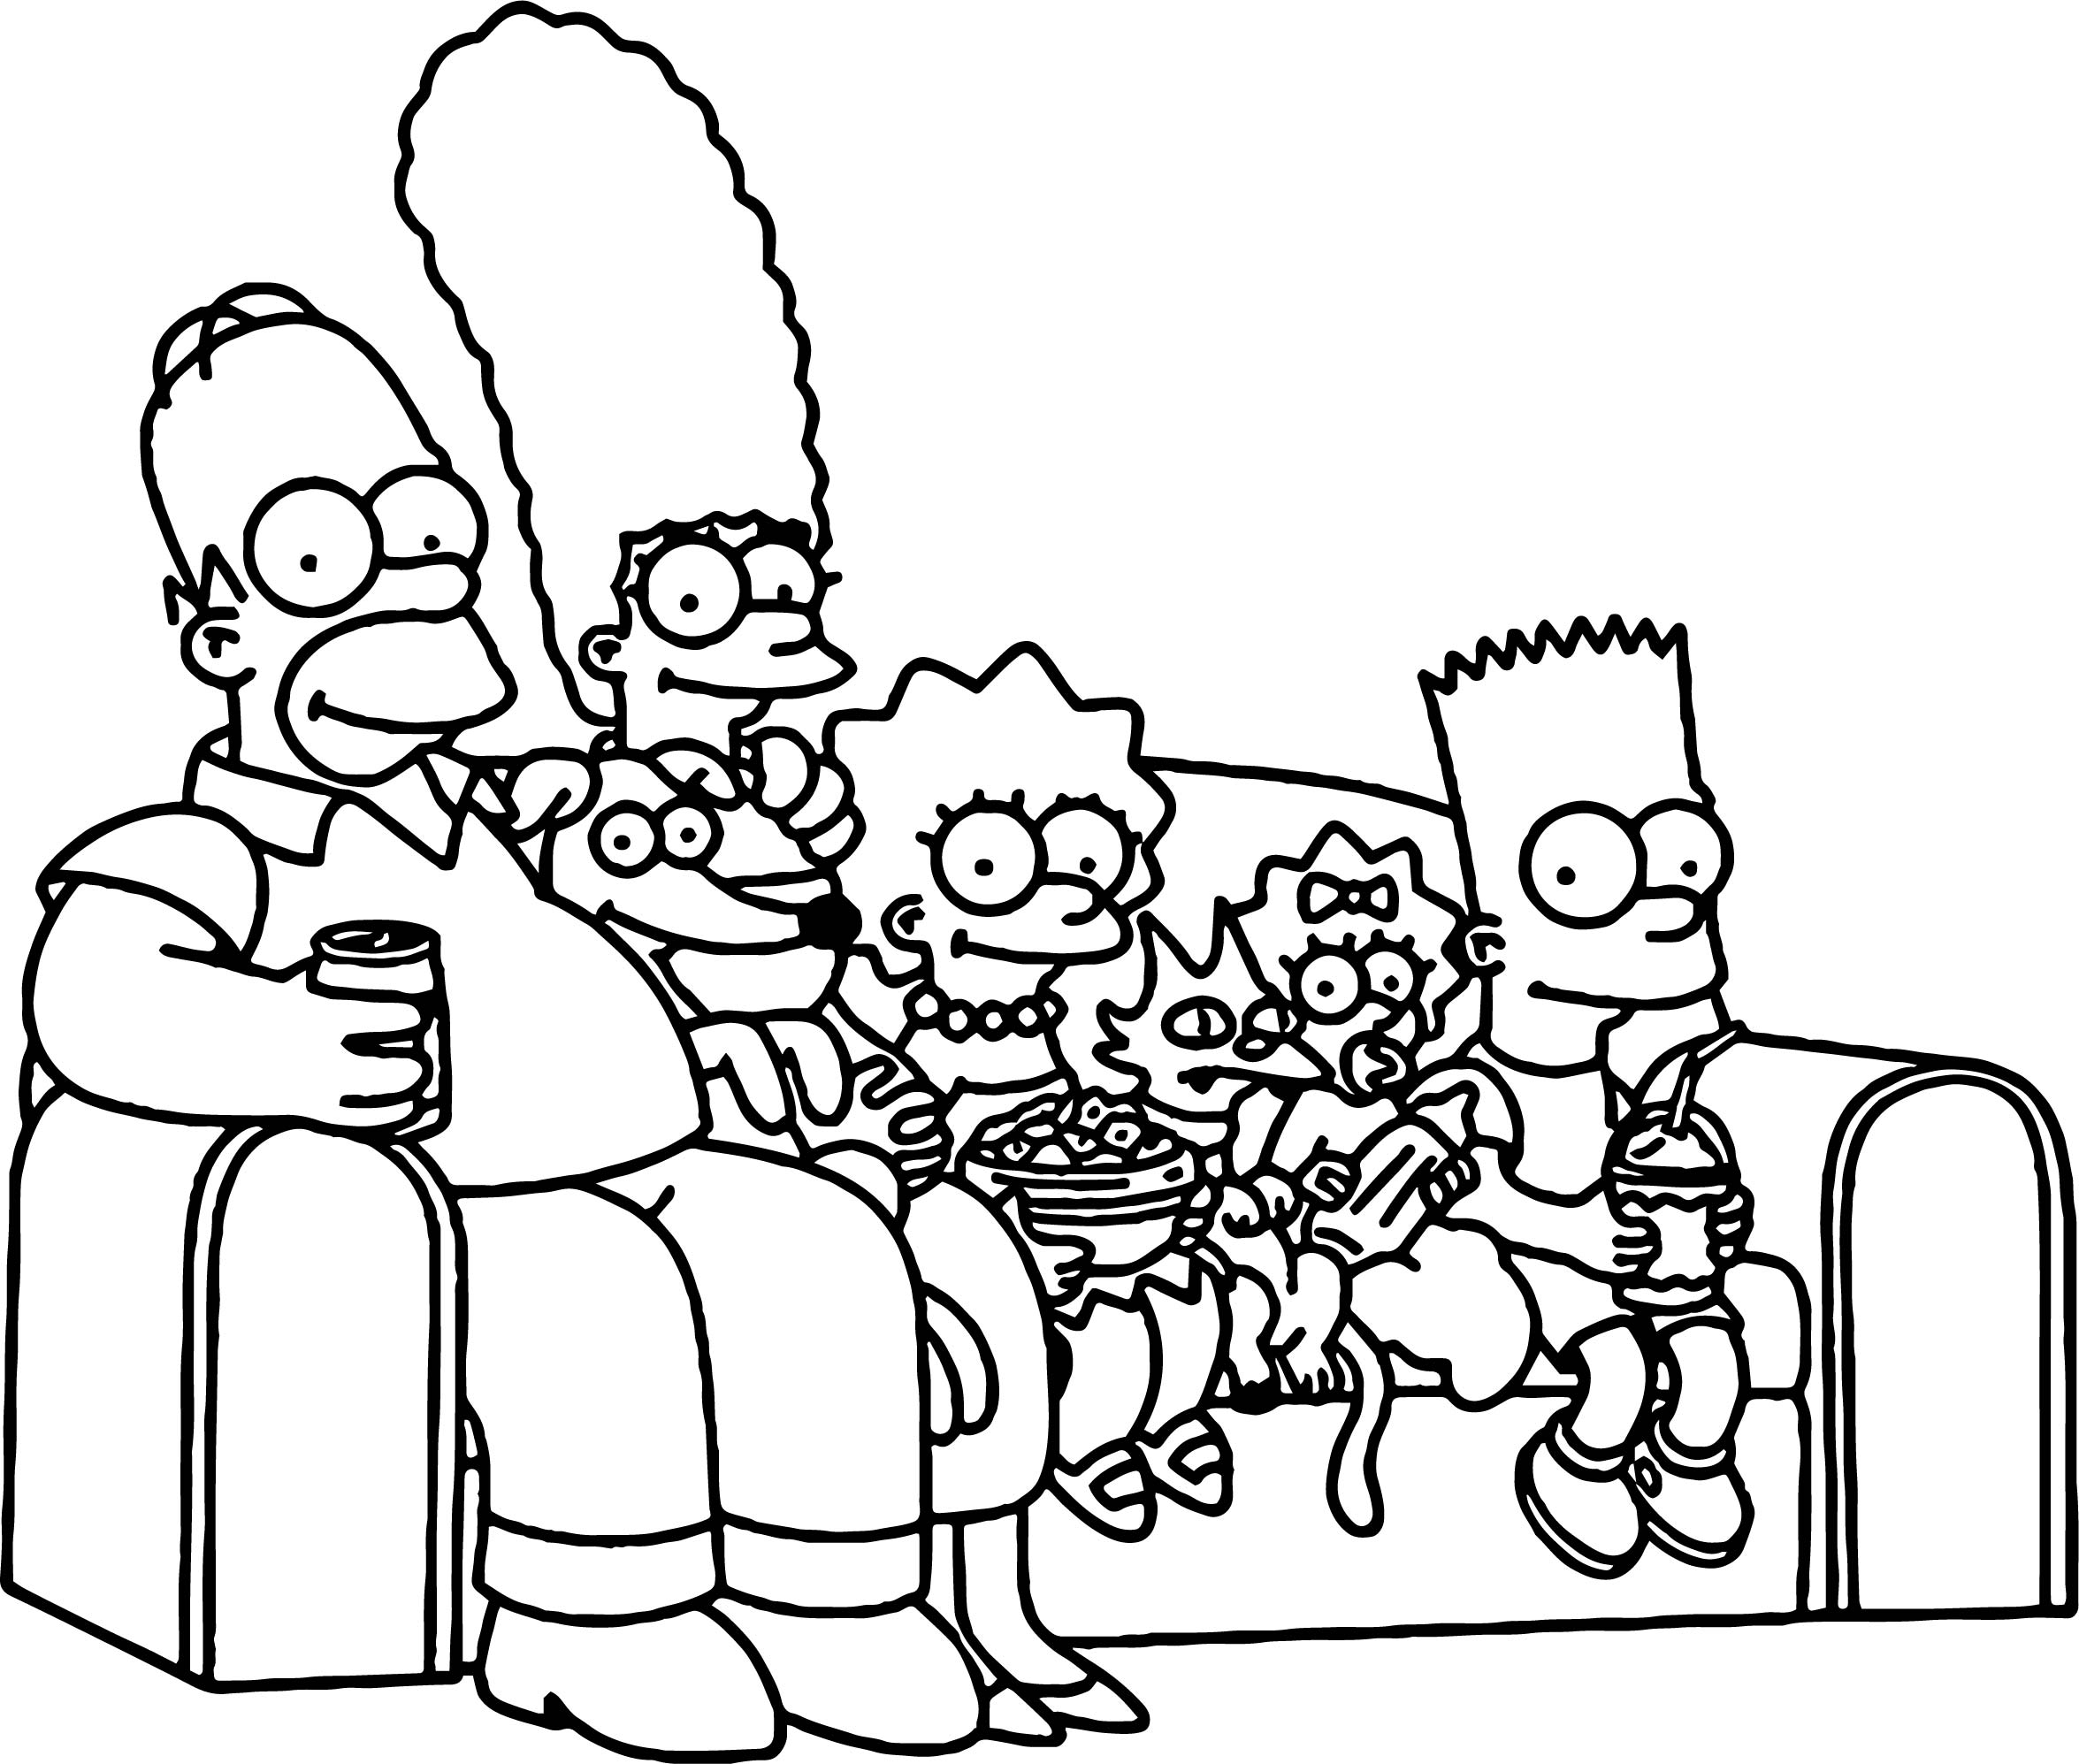 Simpsons Couch Coloring Page